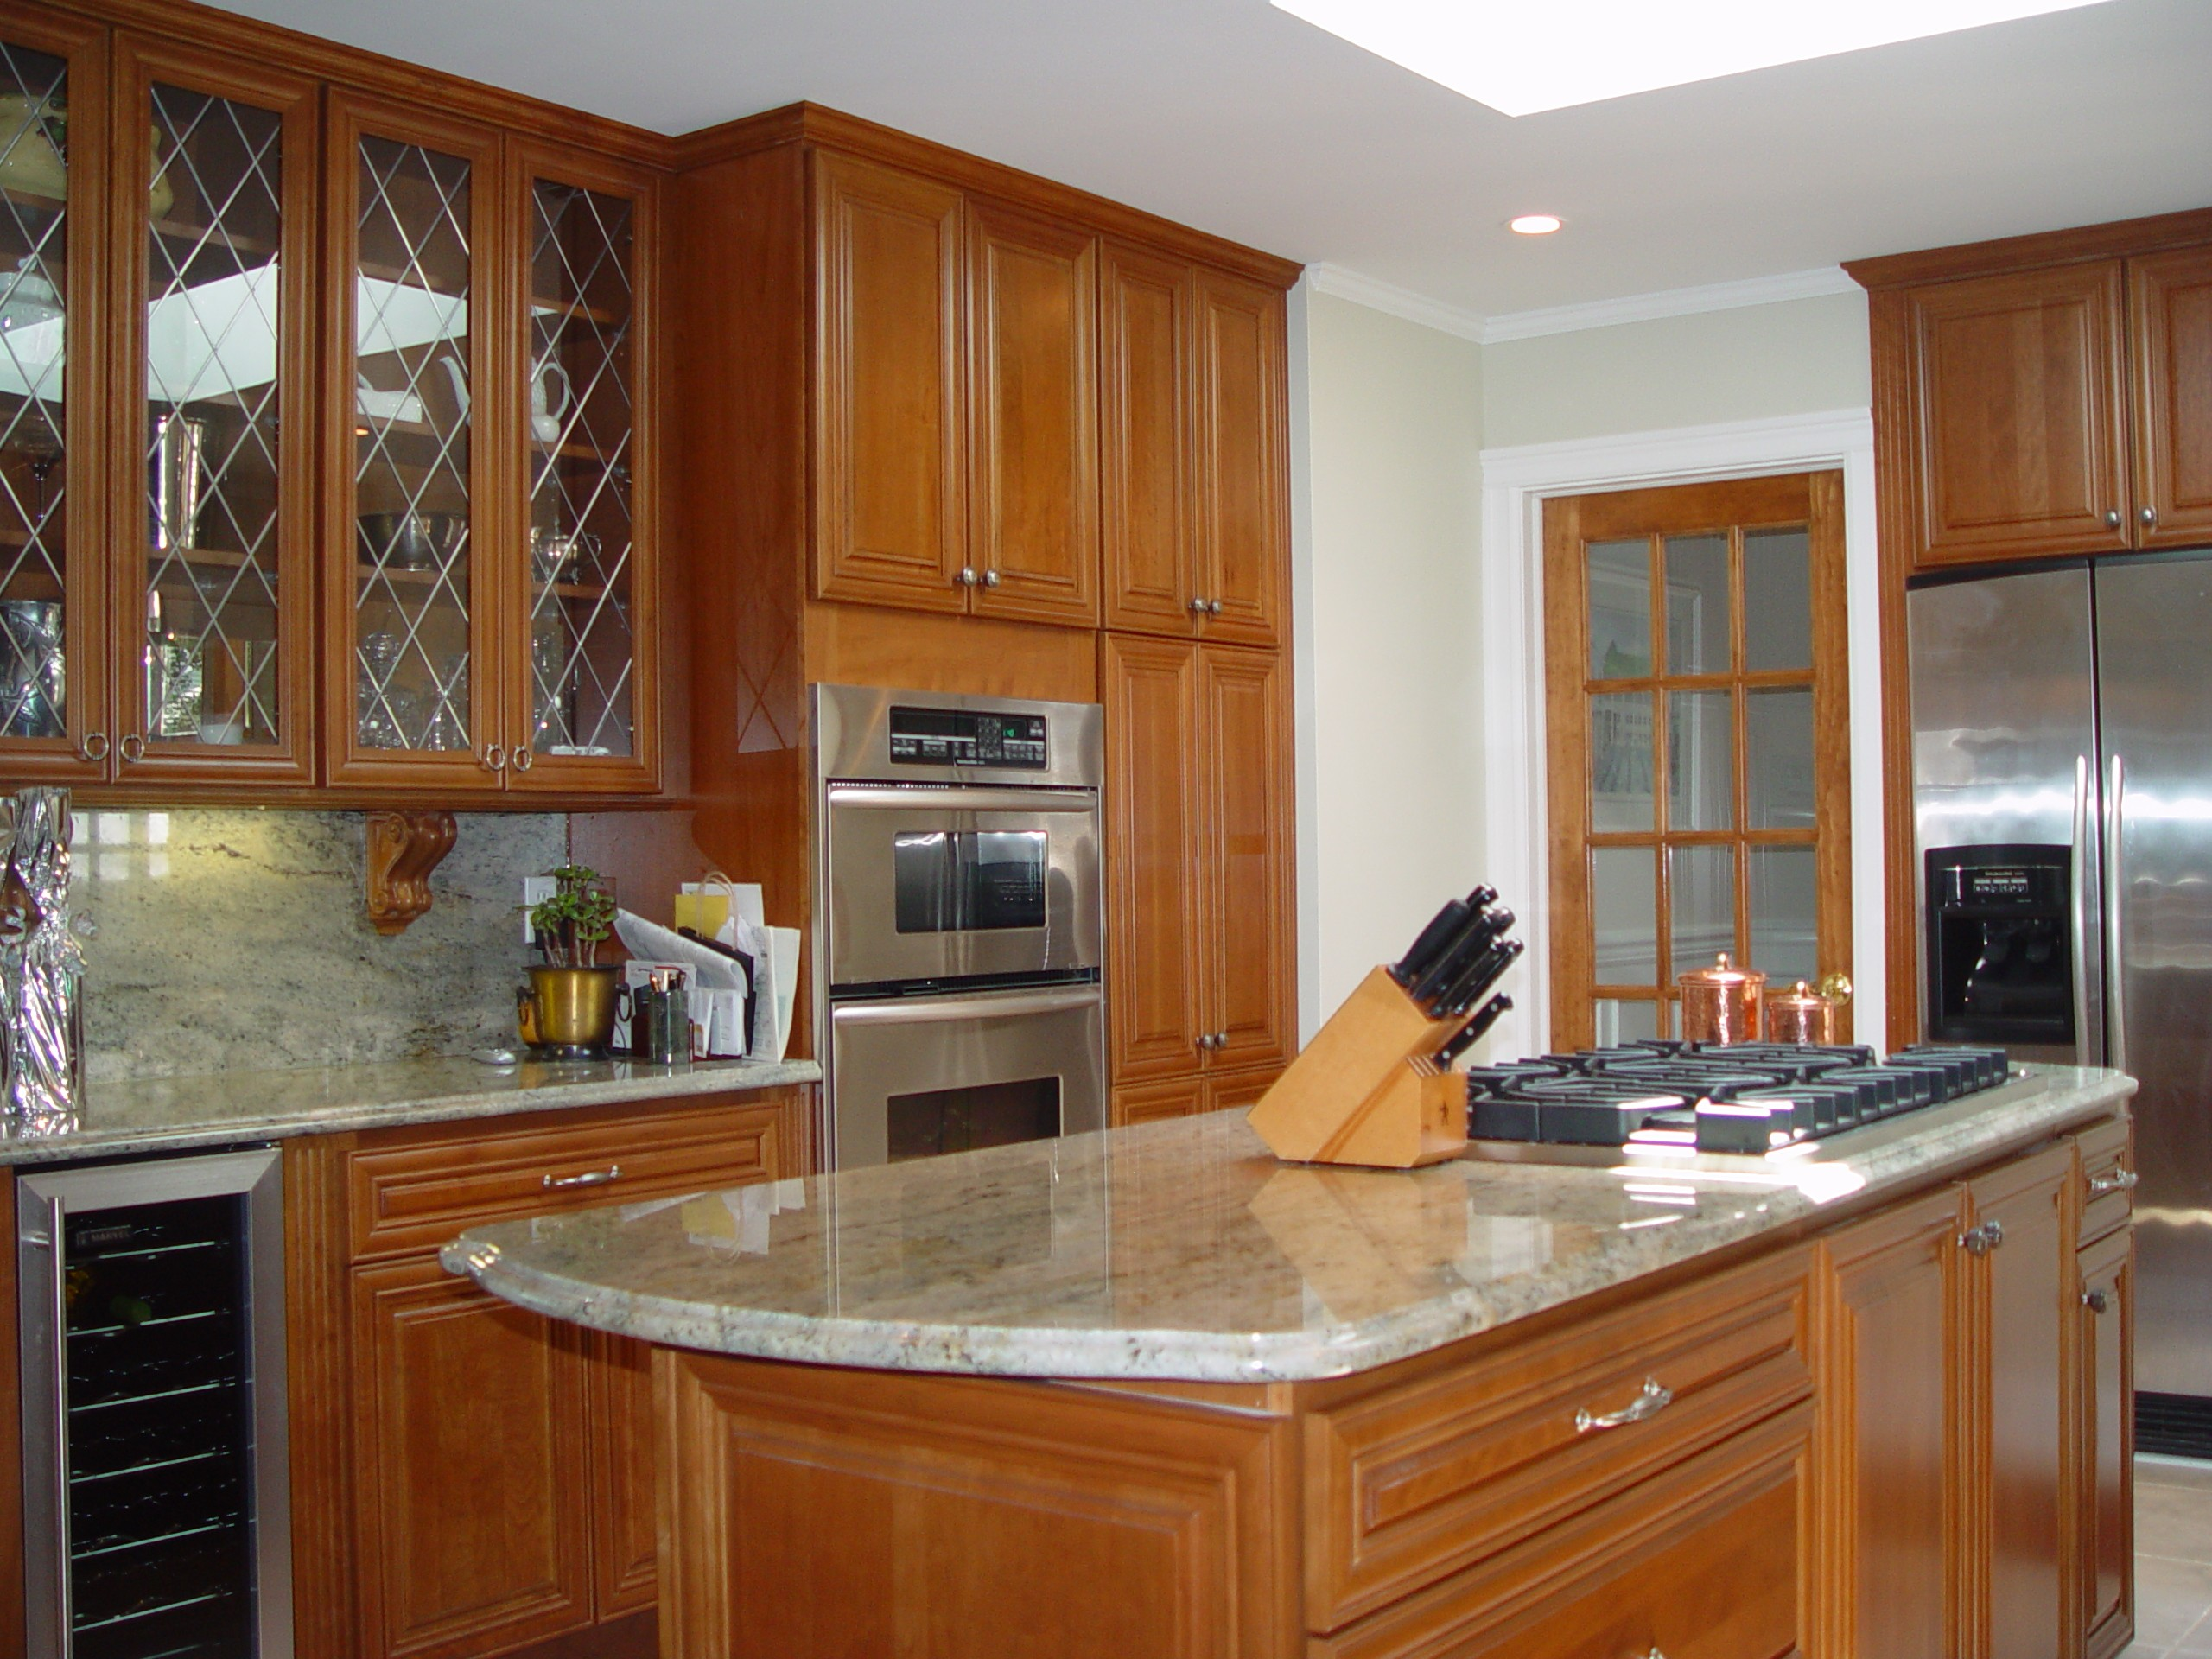 kitchen renovation costs nj corian sinks pricing guide for your next monmouth county remodel design and experts